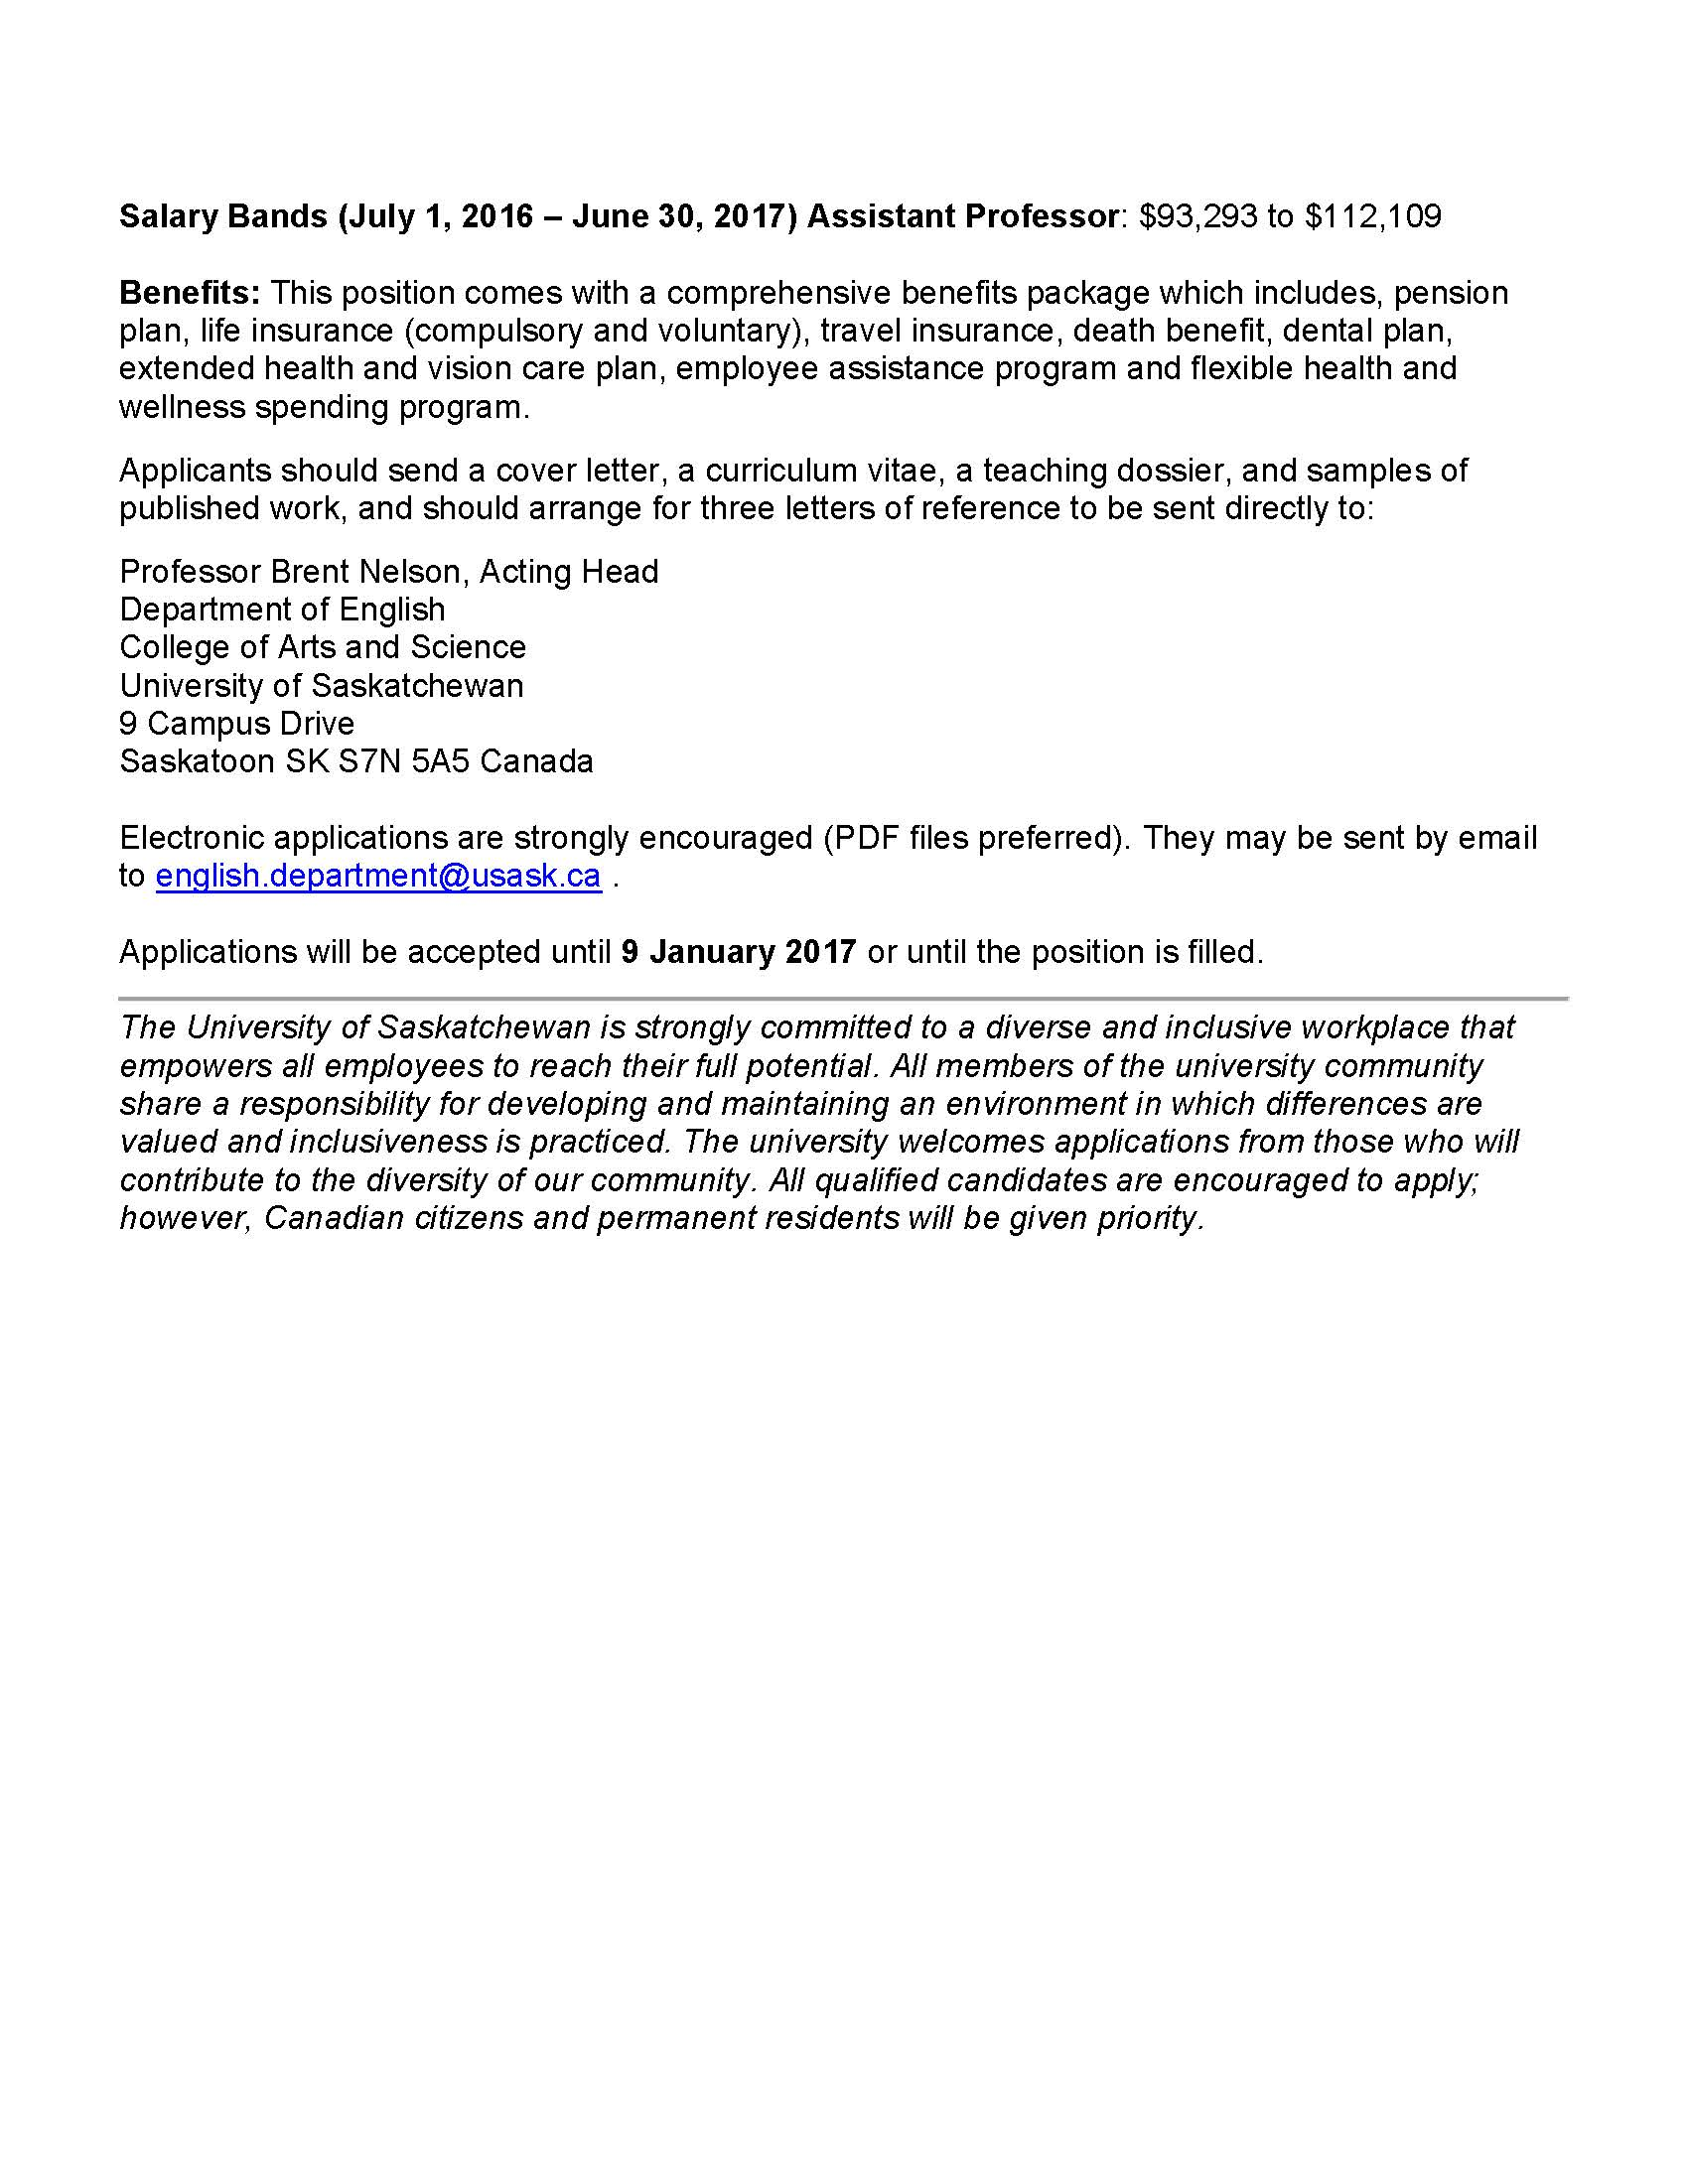 Cover Letter For Assistant Professor Job Application Gallery ...